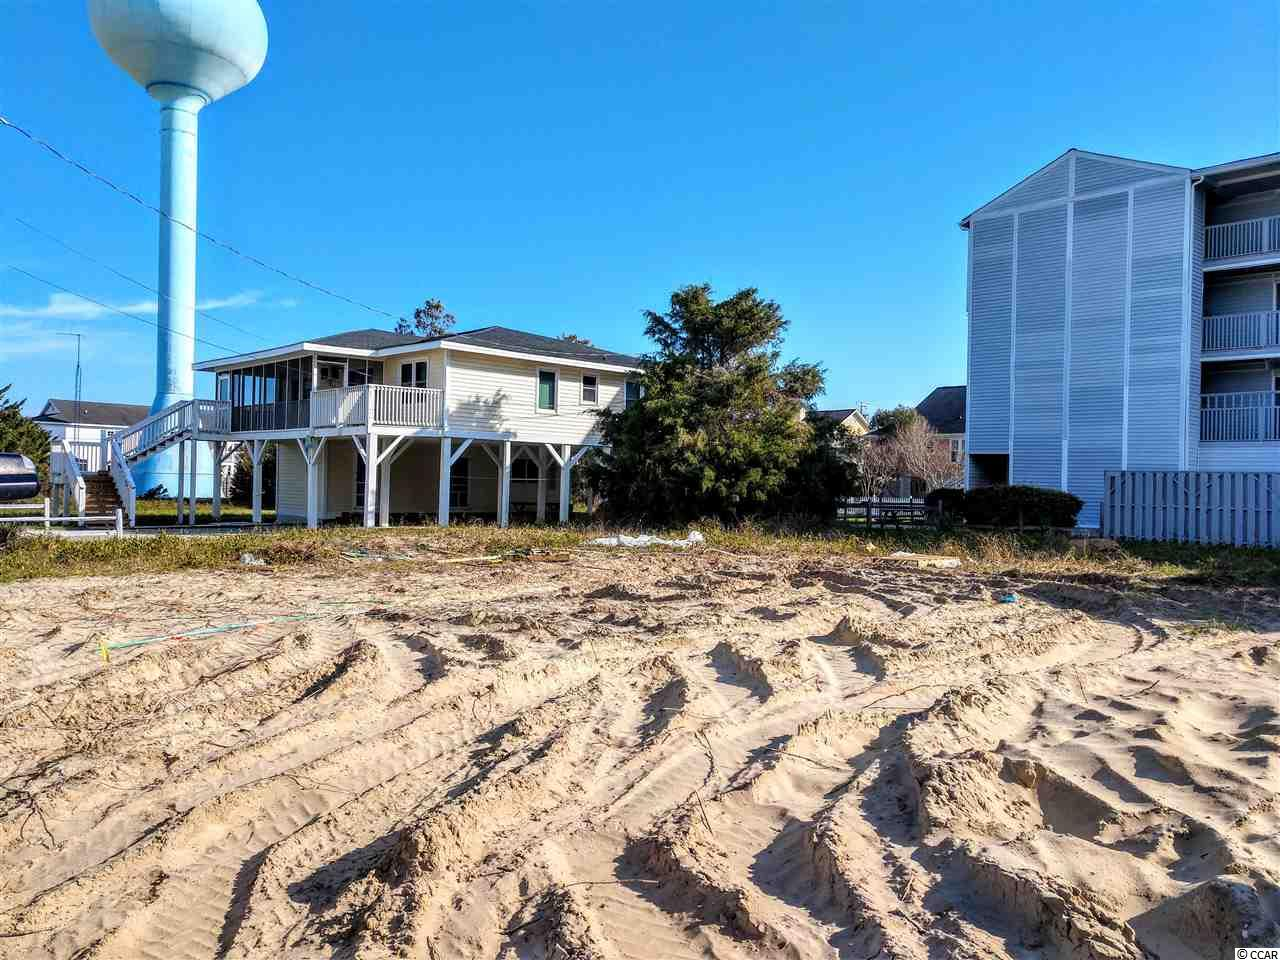 VACANT 2ND ROW LOT IN CHERRY GROVE.  R-4 ZONING ALLOWS FOR MANY GREAT OPPORTUNTIES.   LOCATED ON A BIG, CORNER LOT.  THIS LOT OVER LOOKS THE BEAUTIFUL ATLANTIC OCEAN.  EASY ACCESS TO THE BEACH. WALKWAY WITH DIRECT ACCESS TO THE BEACH!